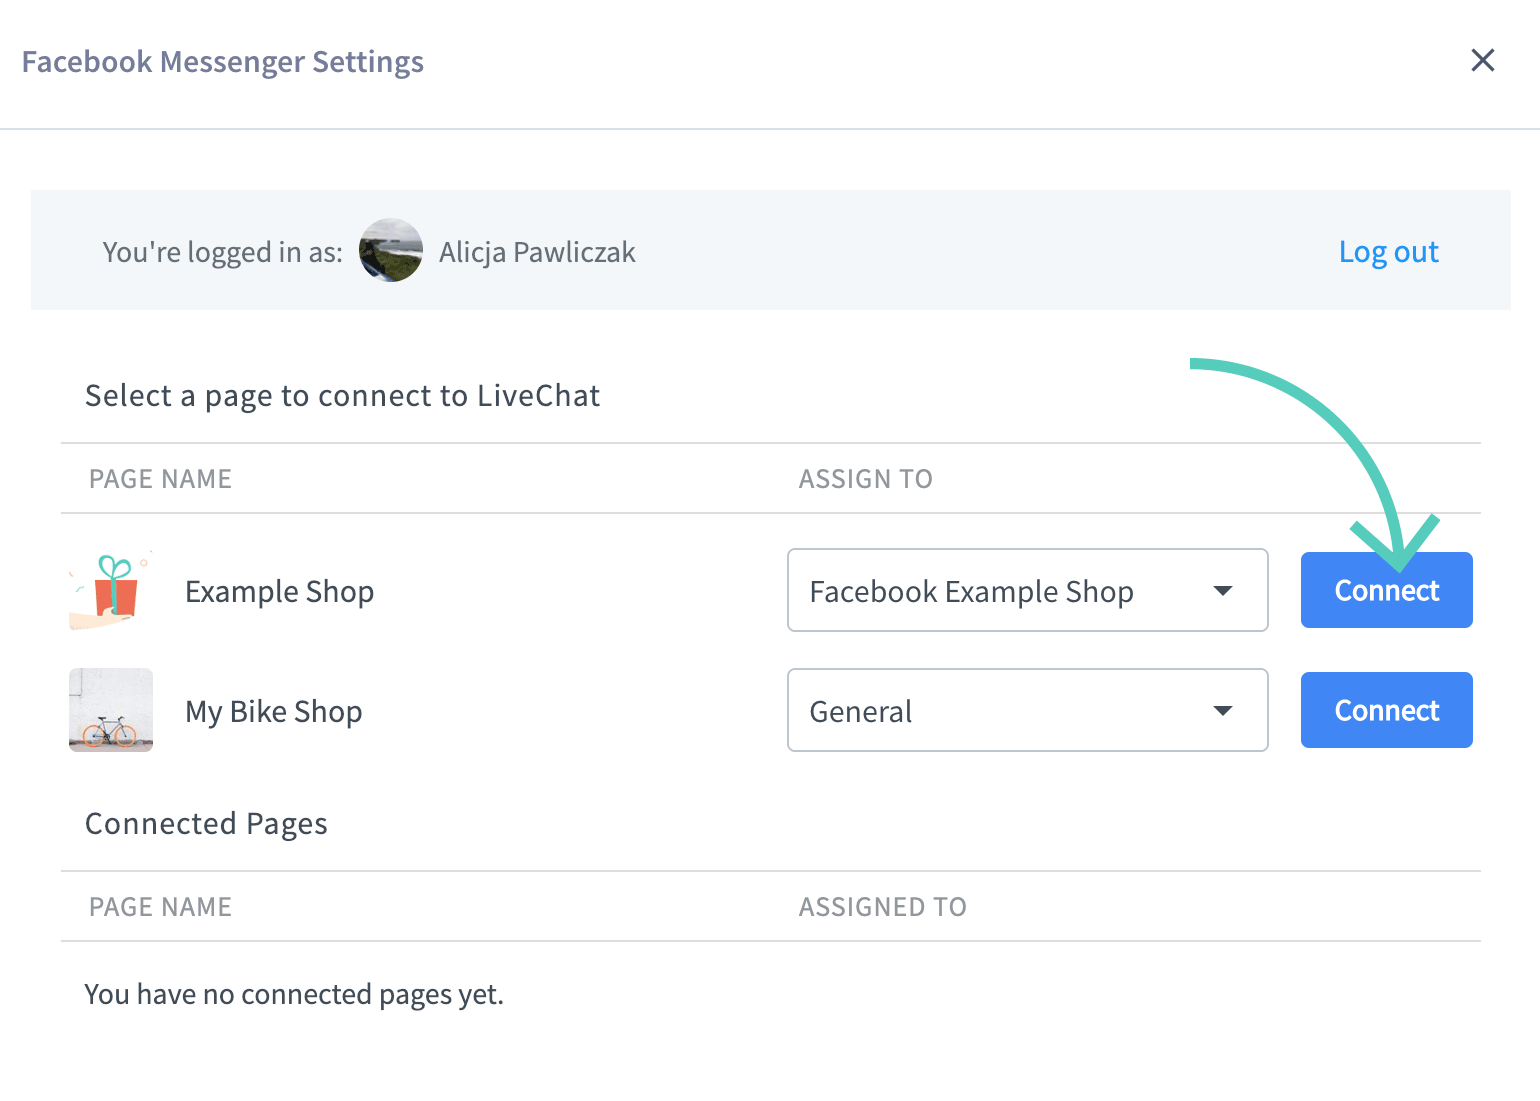 Connect your Livechat account to Facebook Messenger